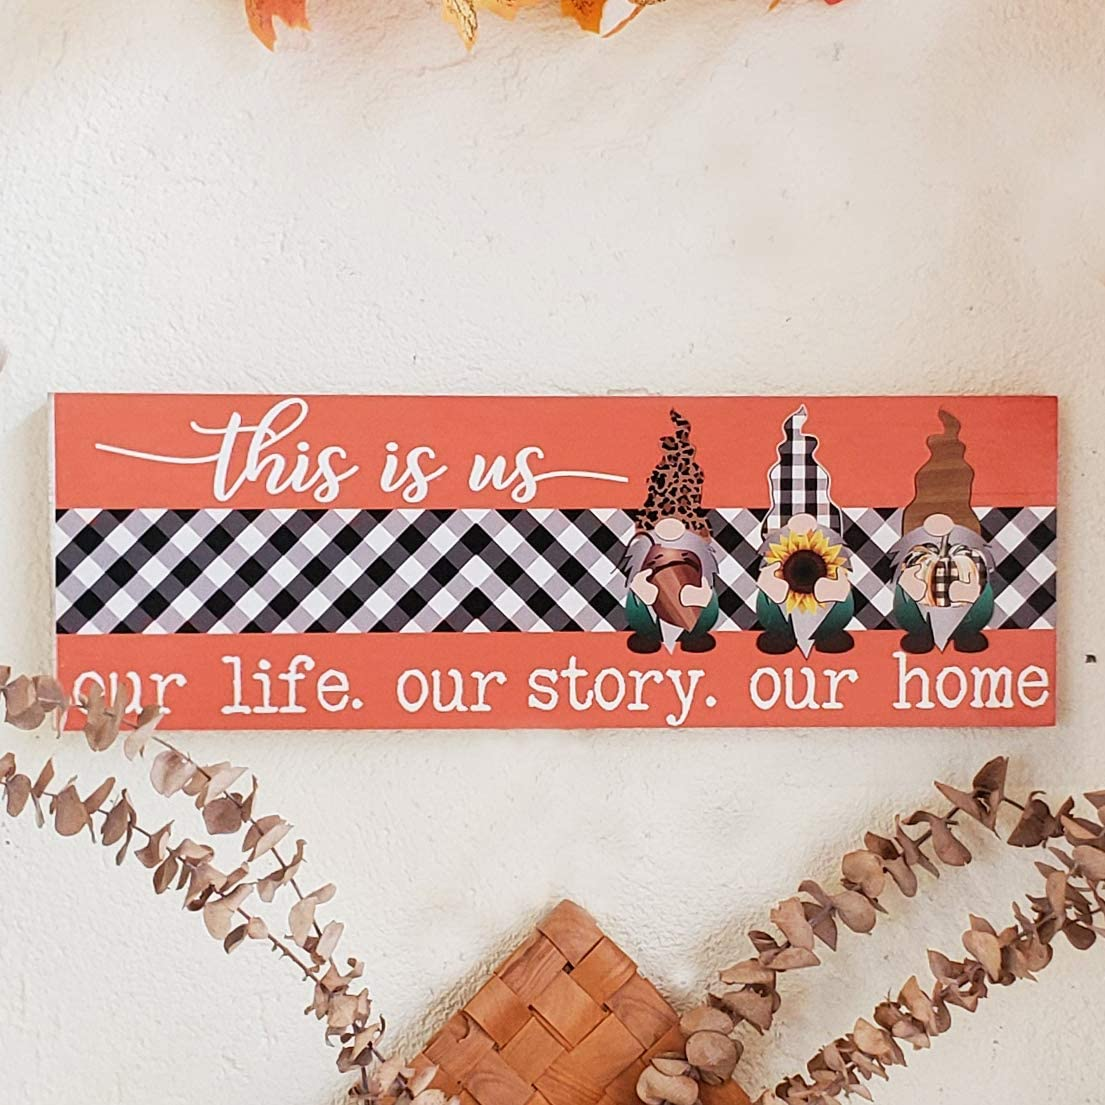 HLFMVWE Wood Wall Sign,This is Us Wall Decor, Plaid and Gnomes Prints Modern Farmhouse Decor Plaque,Christmas Home Decoration